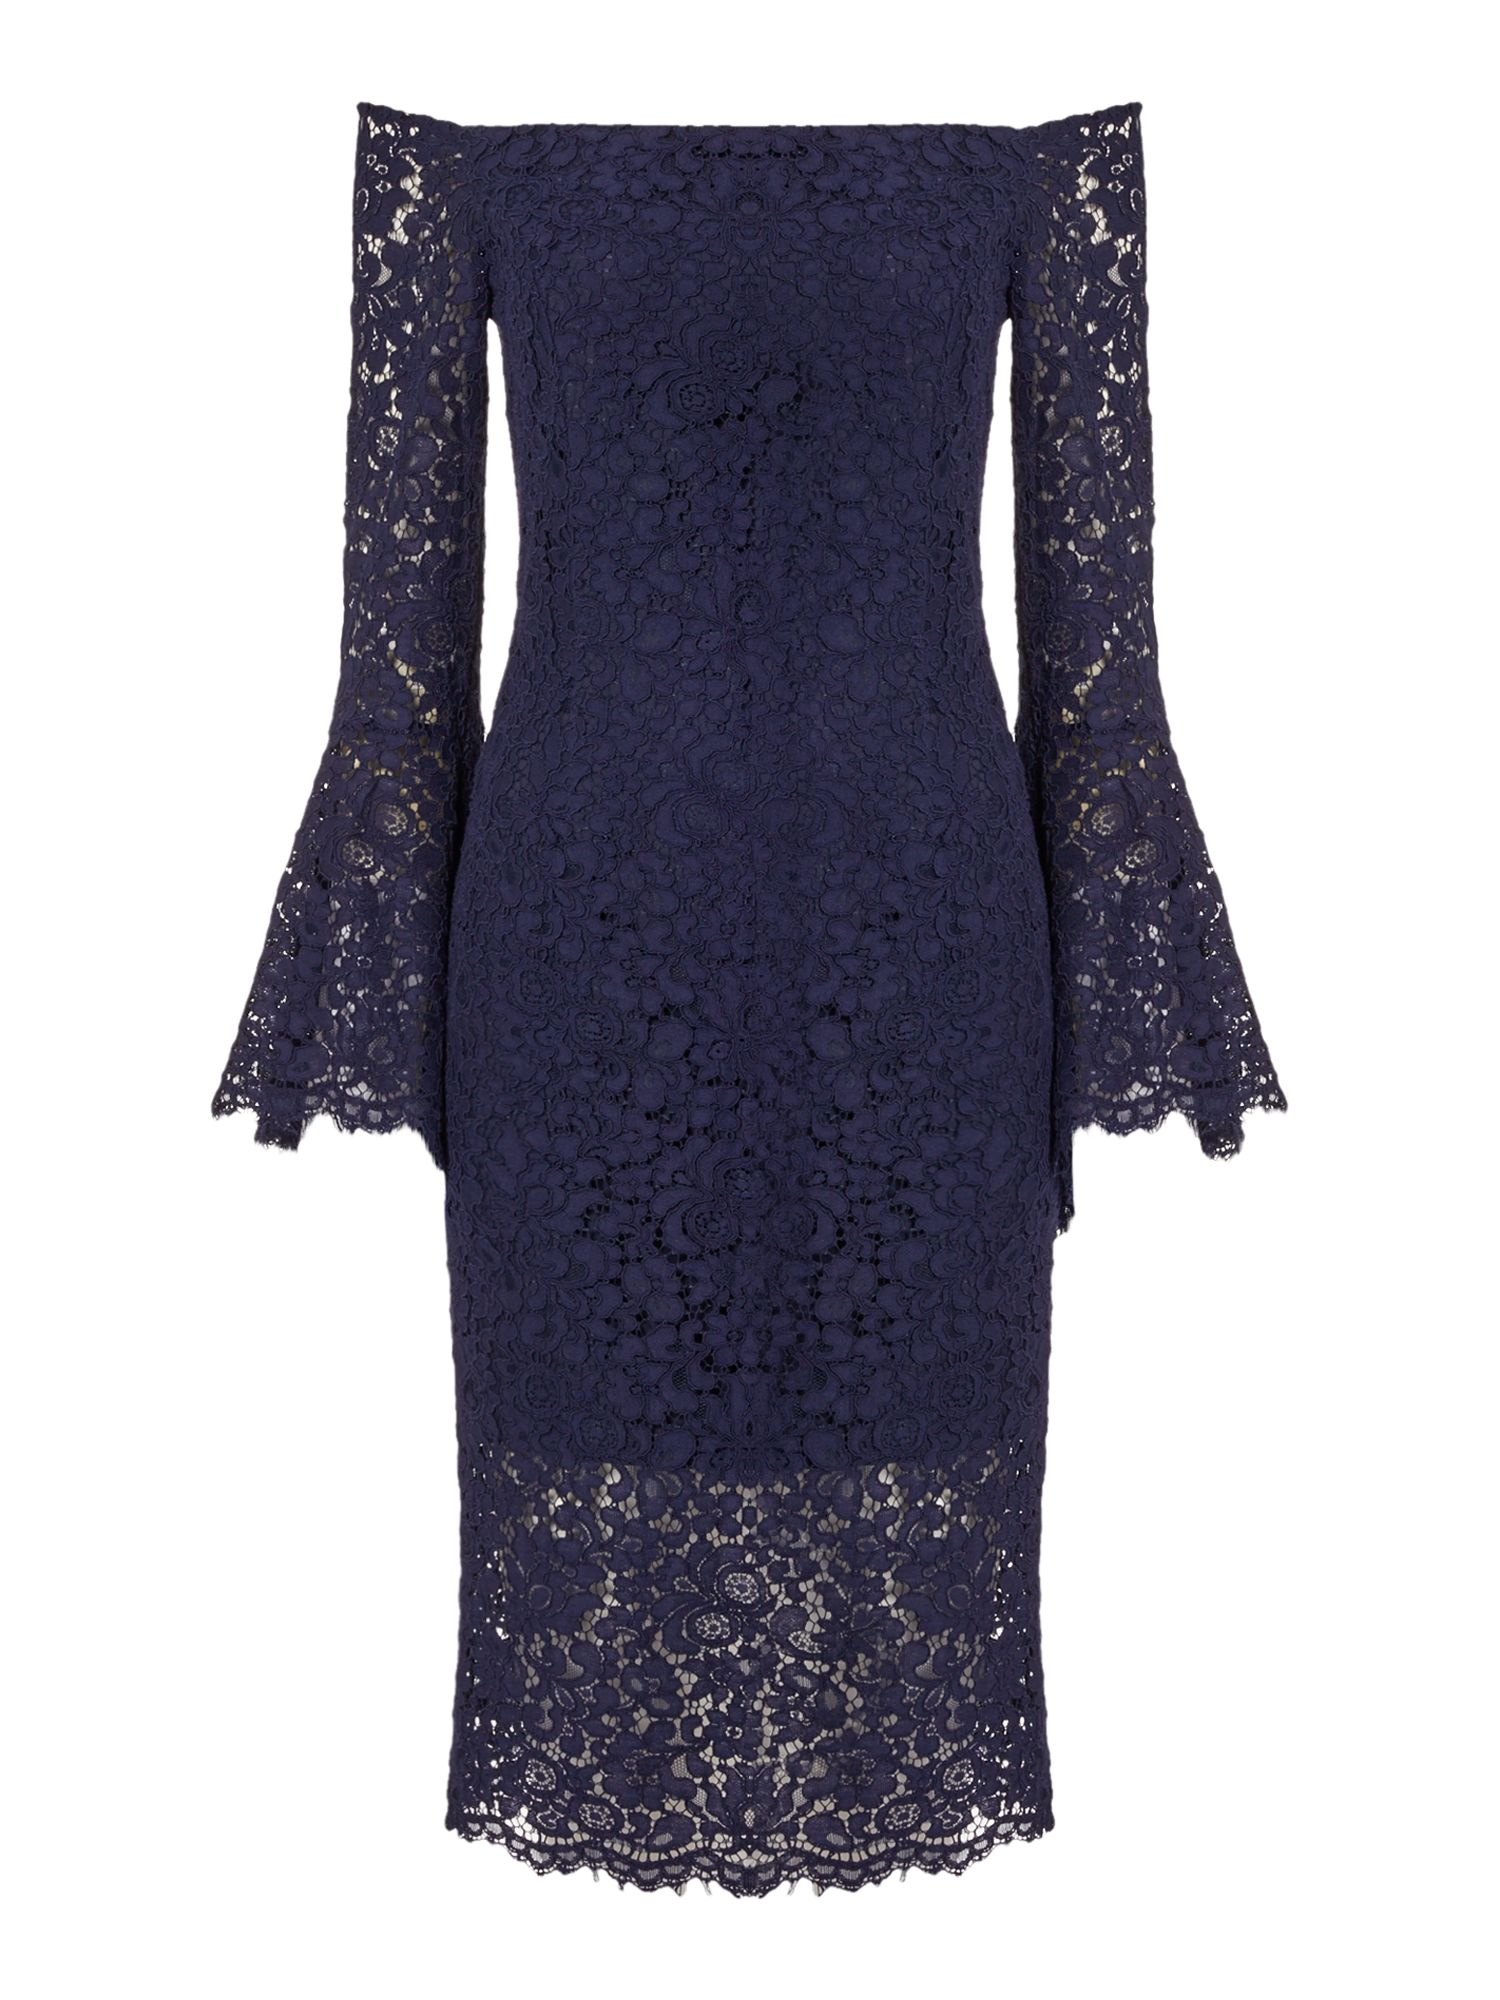 Bardot Plunge Lace Dress, French Blue